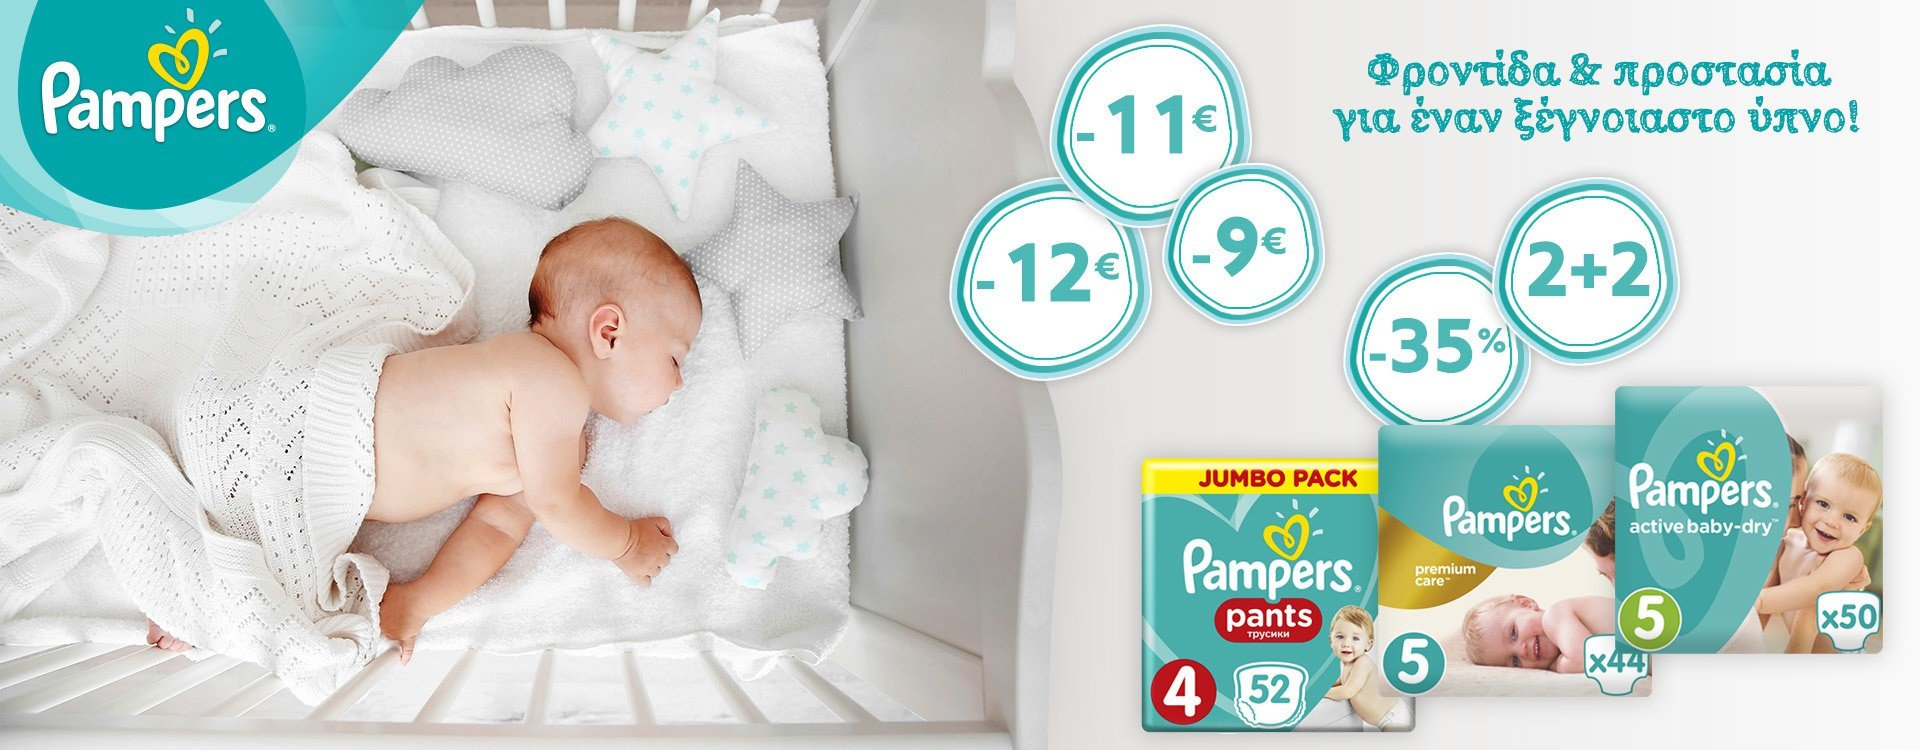 Slider pampers sept18 1920x750